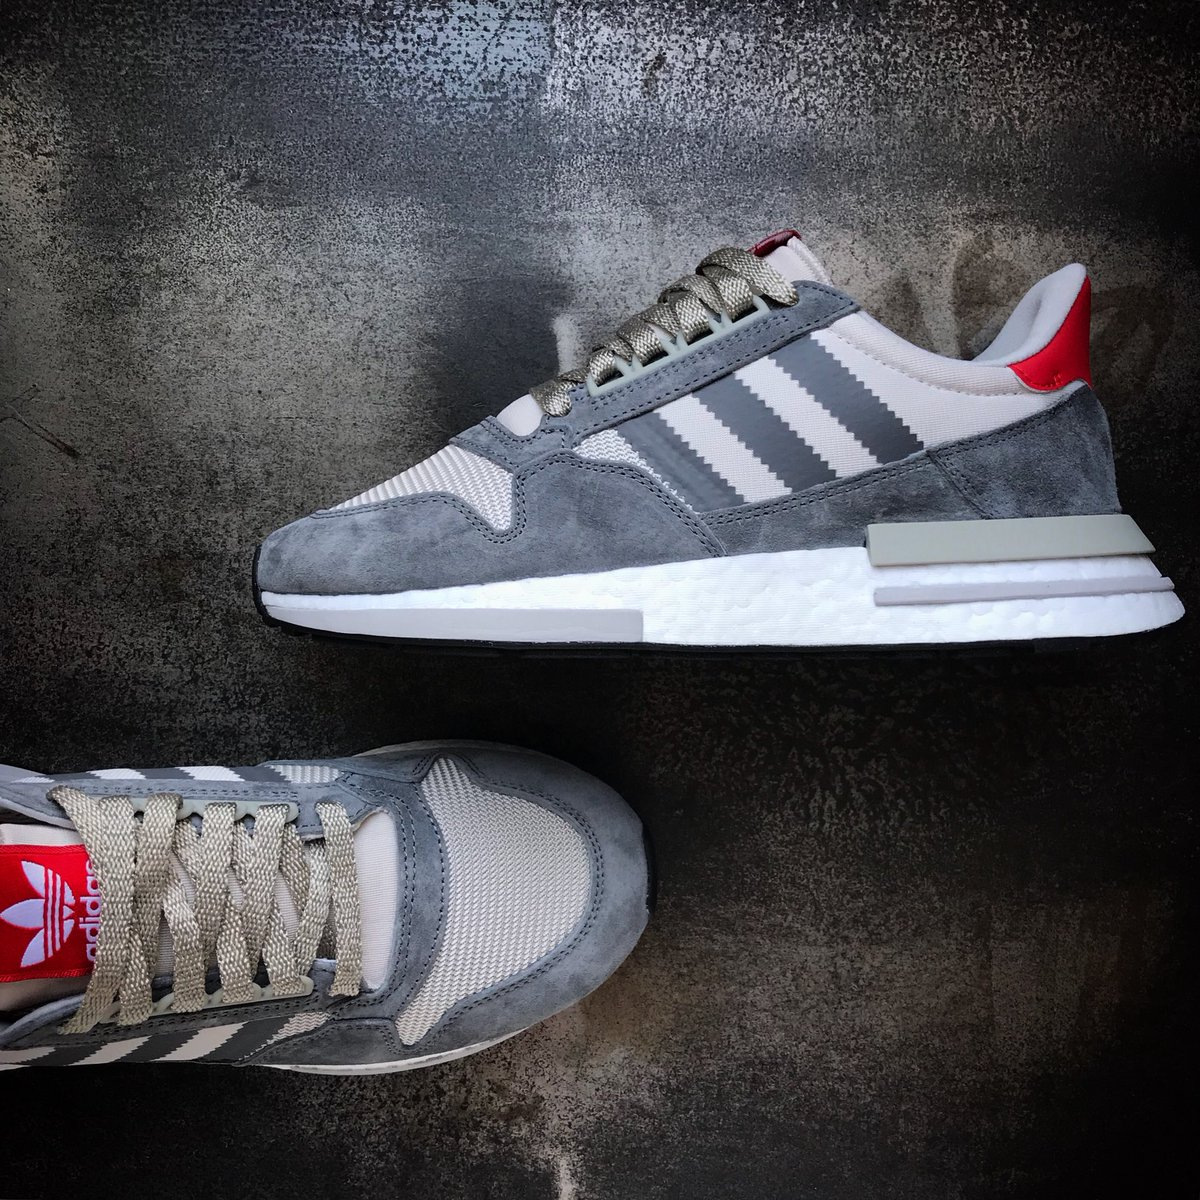 c7c54c509 The adidas Originals ZX 500 RM combines classic tooling in an OG colourway  with the comfort of a BOOST sole unit. Available now £119.95 .